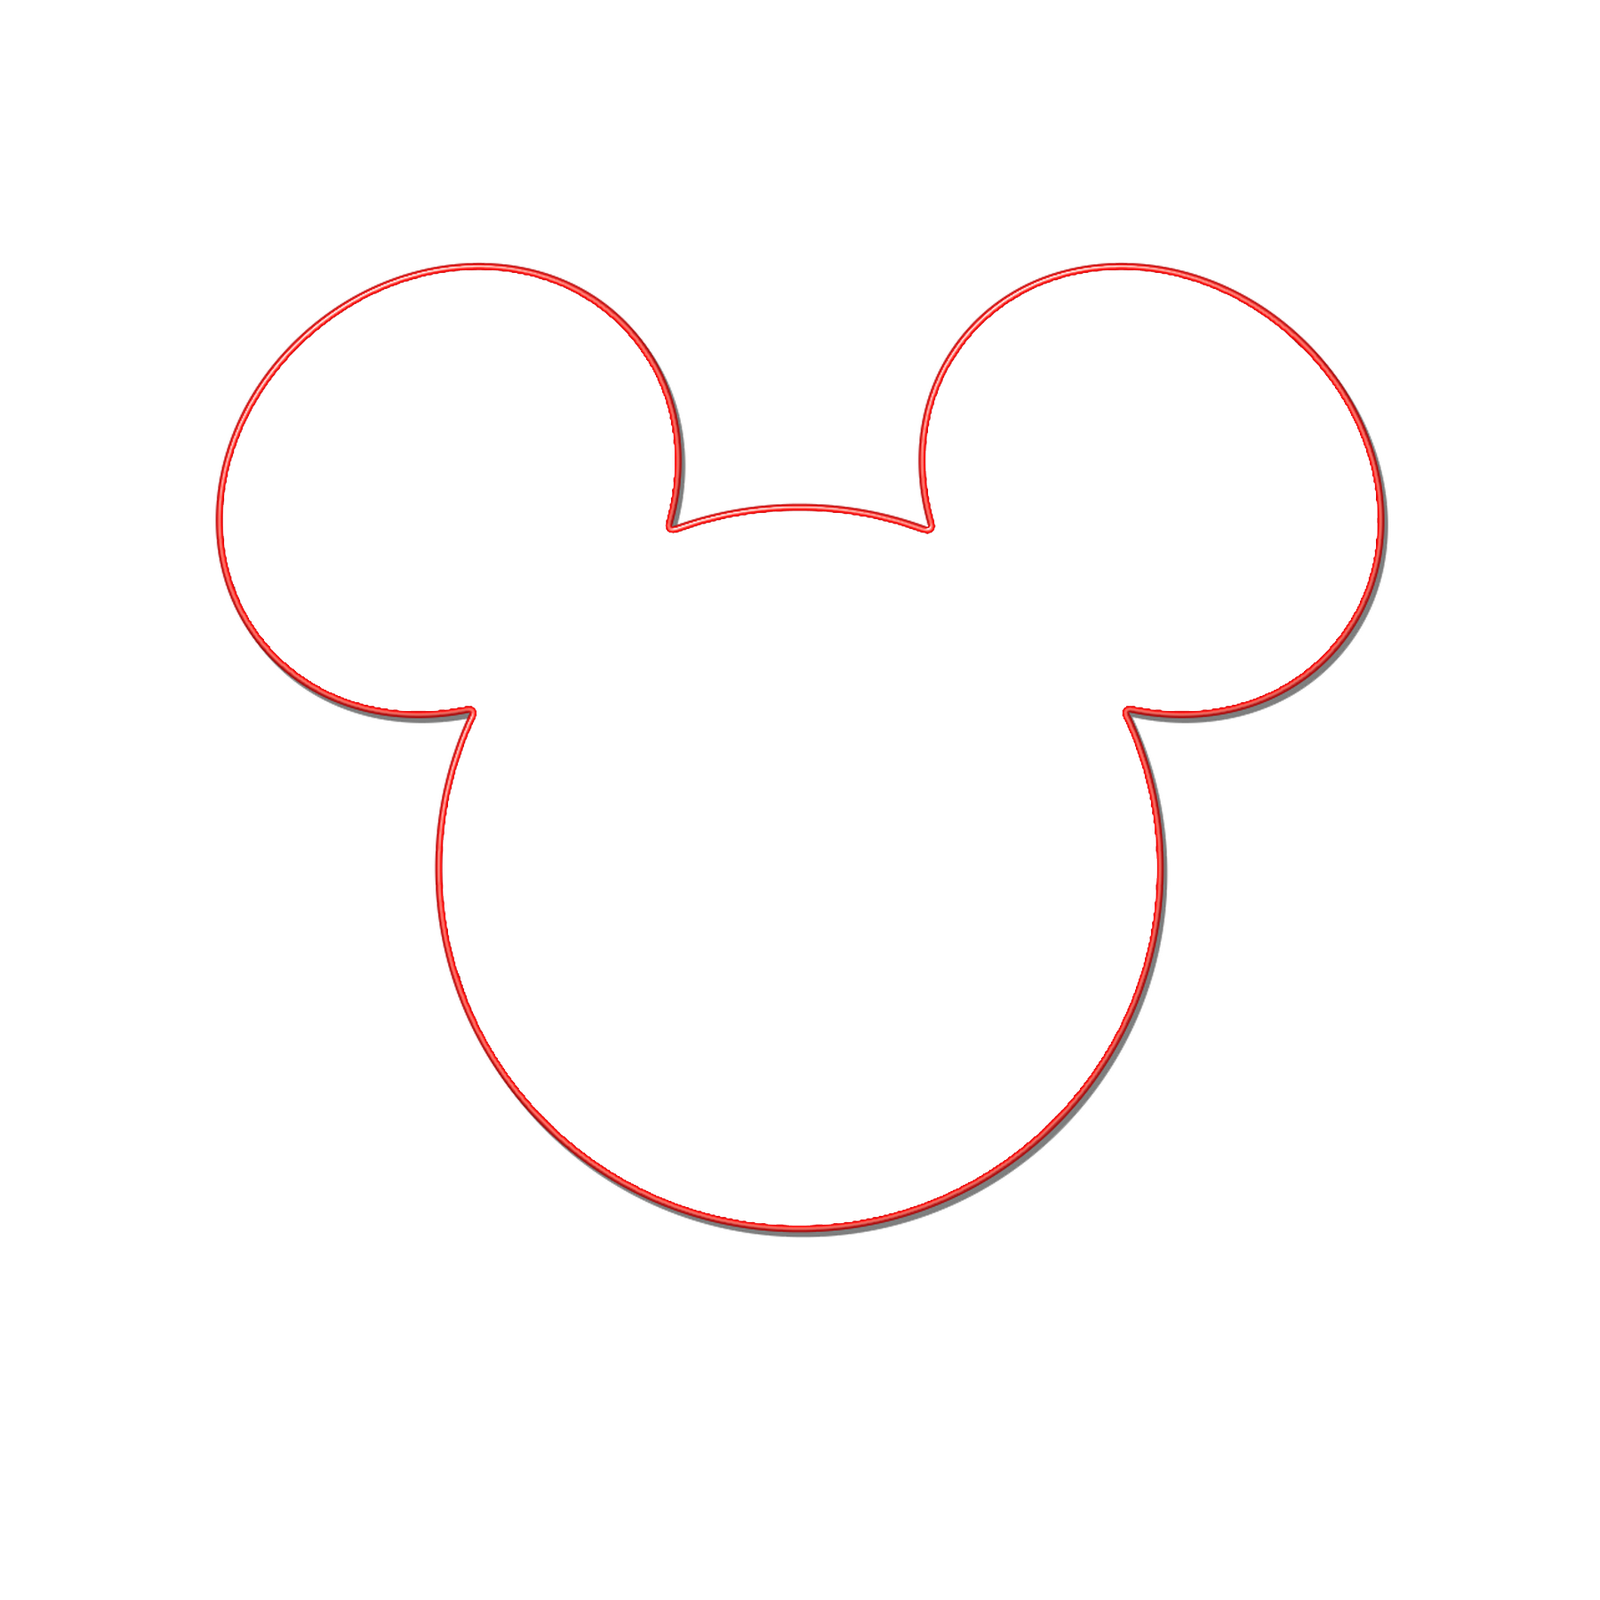 Milliepie S Musings Making Your Own Mickey Head Disney Cruise Door Decorations Mickey Mouse Silhouette Disney Cruise Magnets